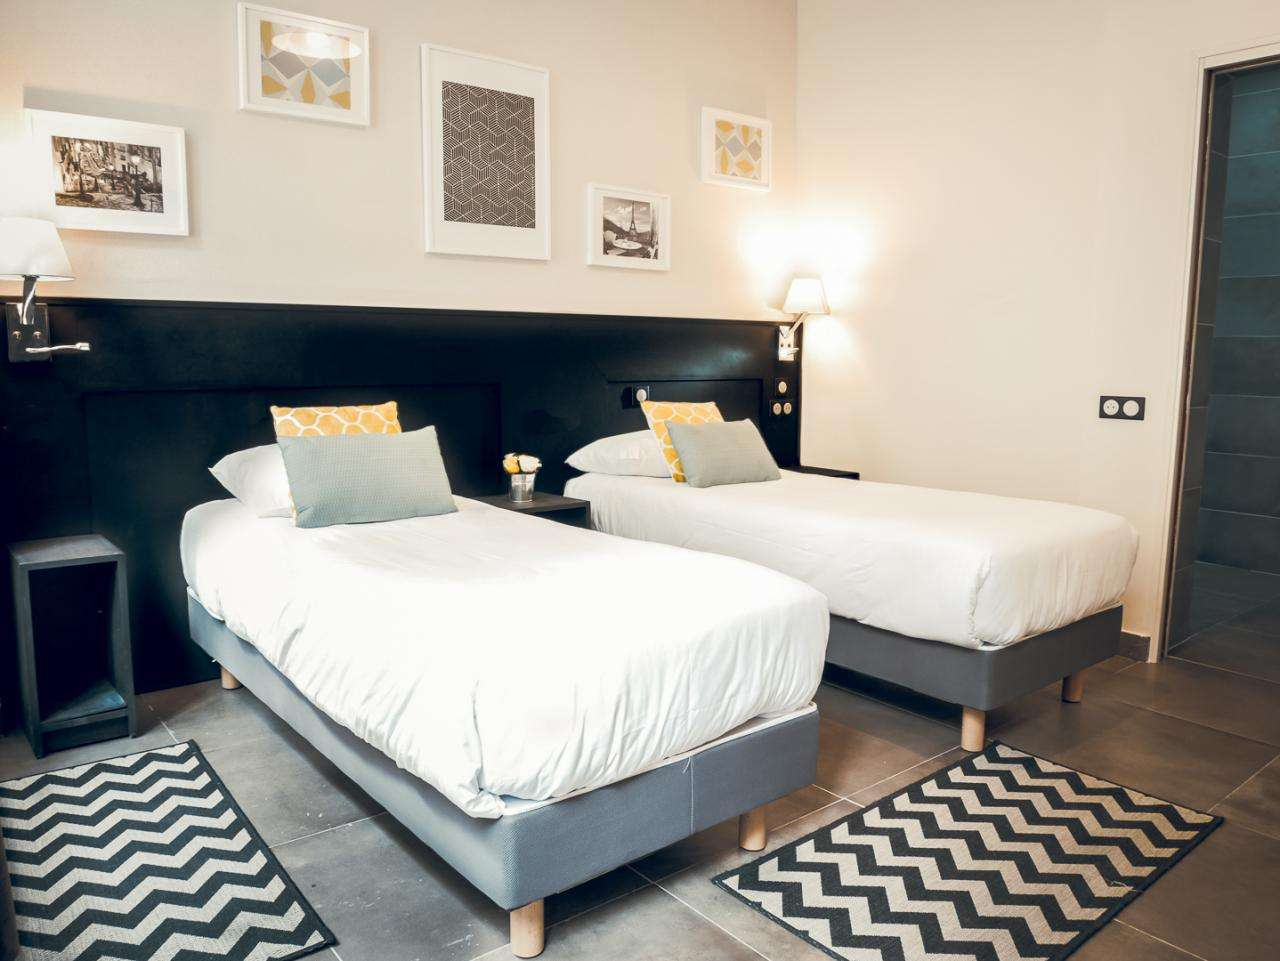 Hotel Bonsejour - PMR Twin Room